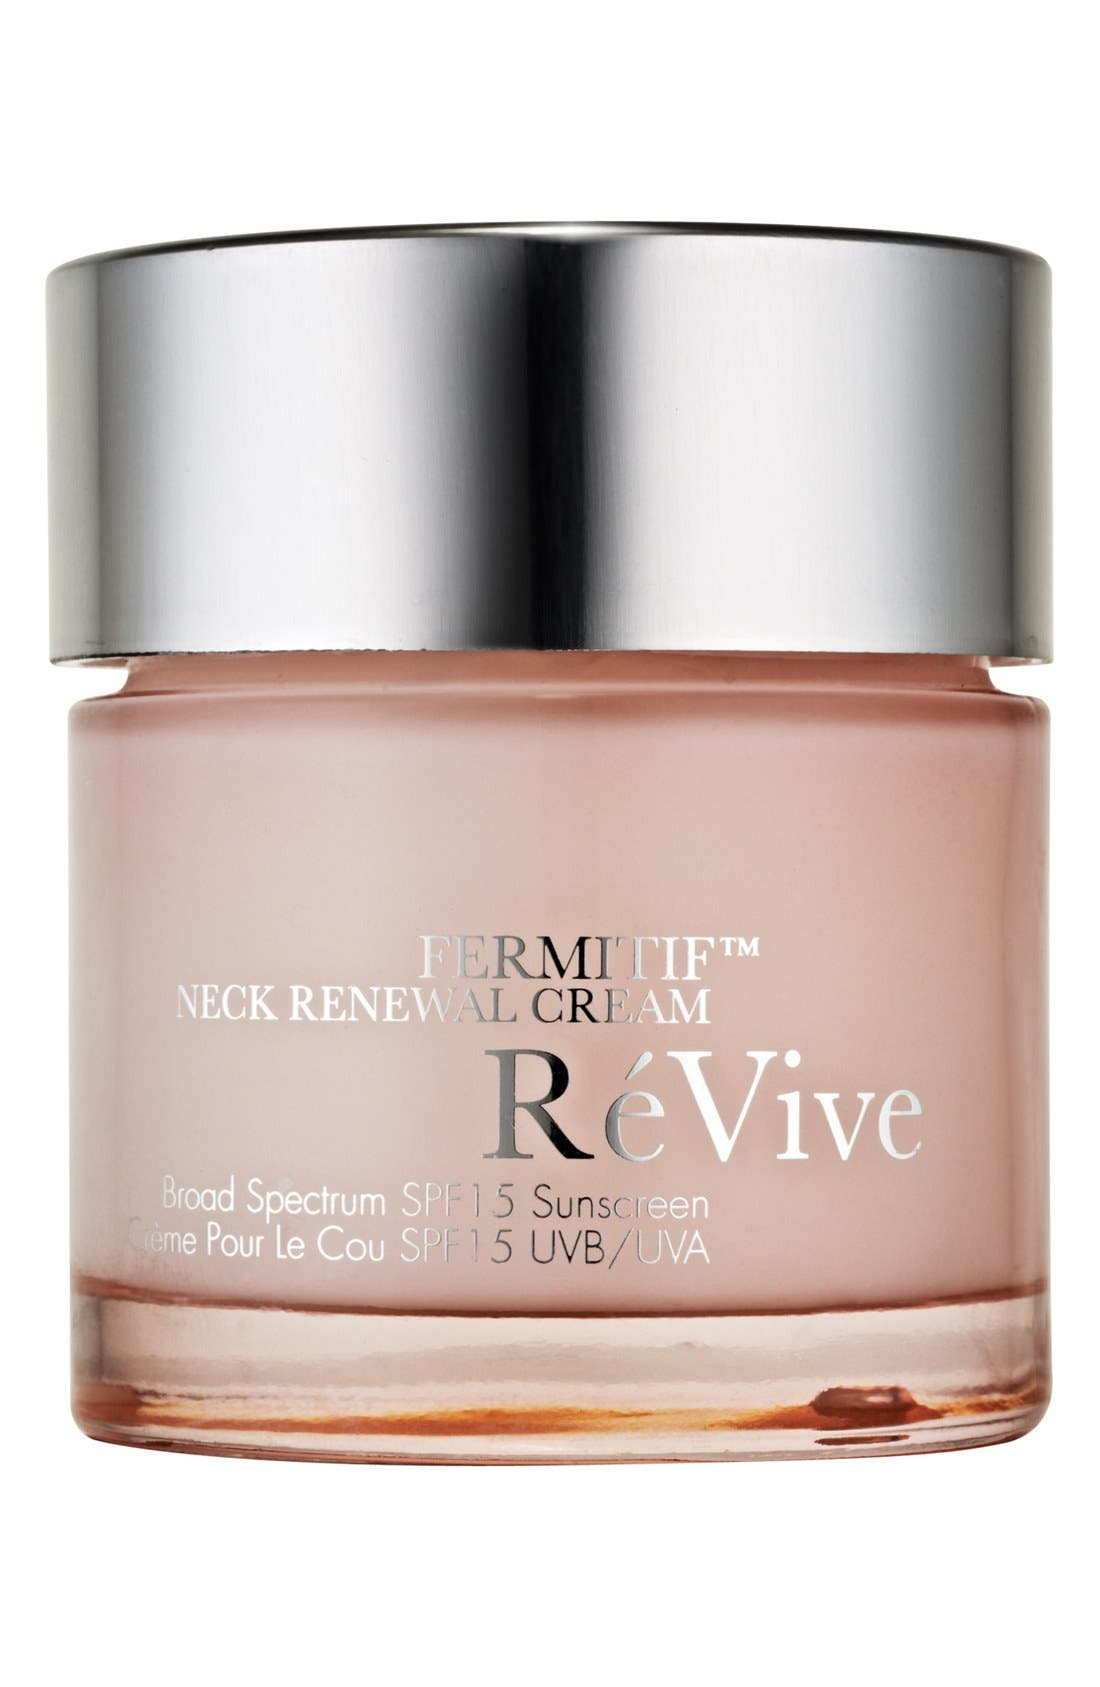 RéVive® Fermitif™ Neck Renewal Cream